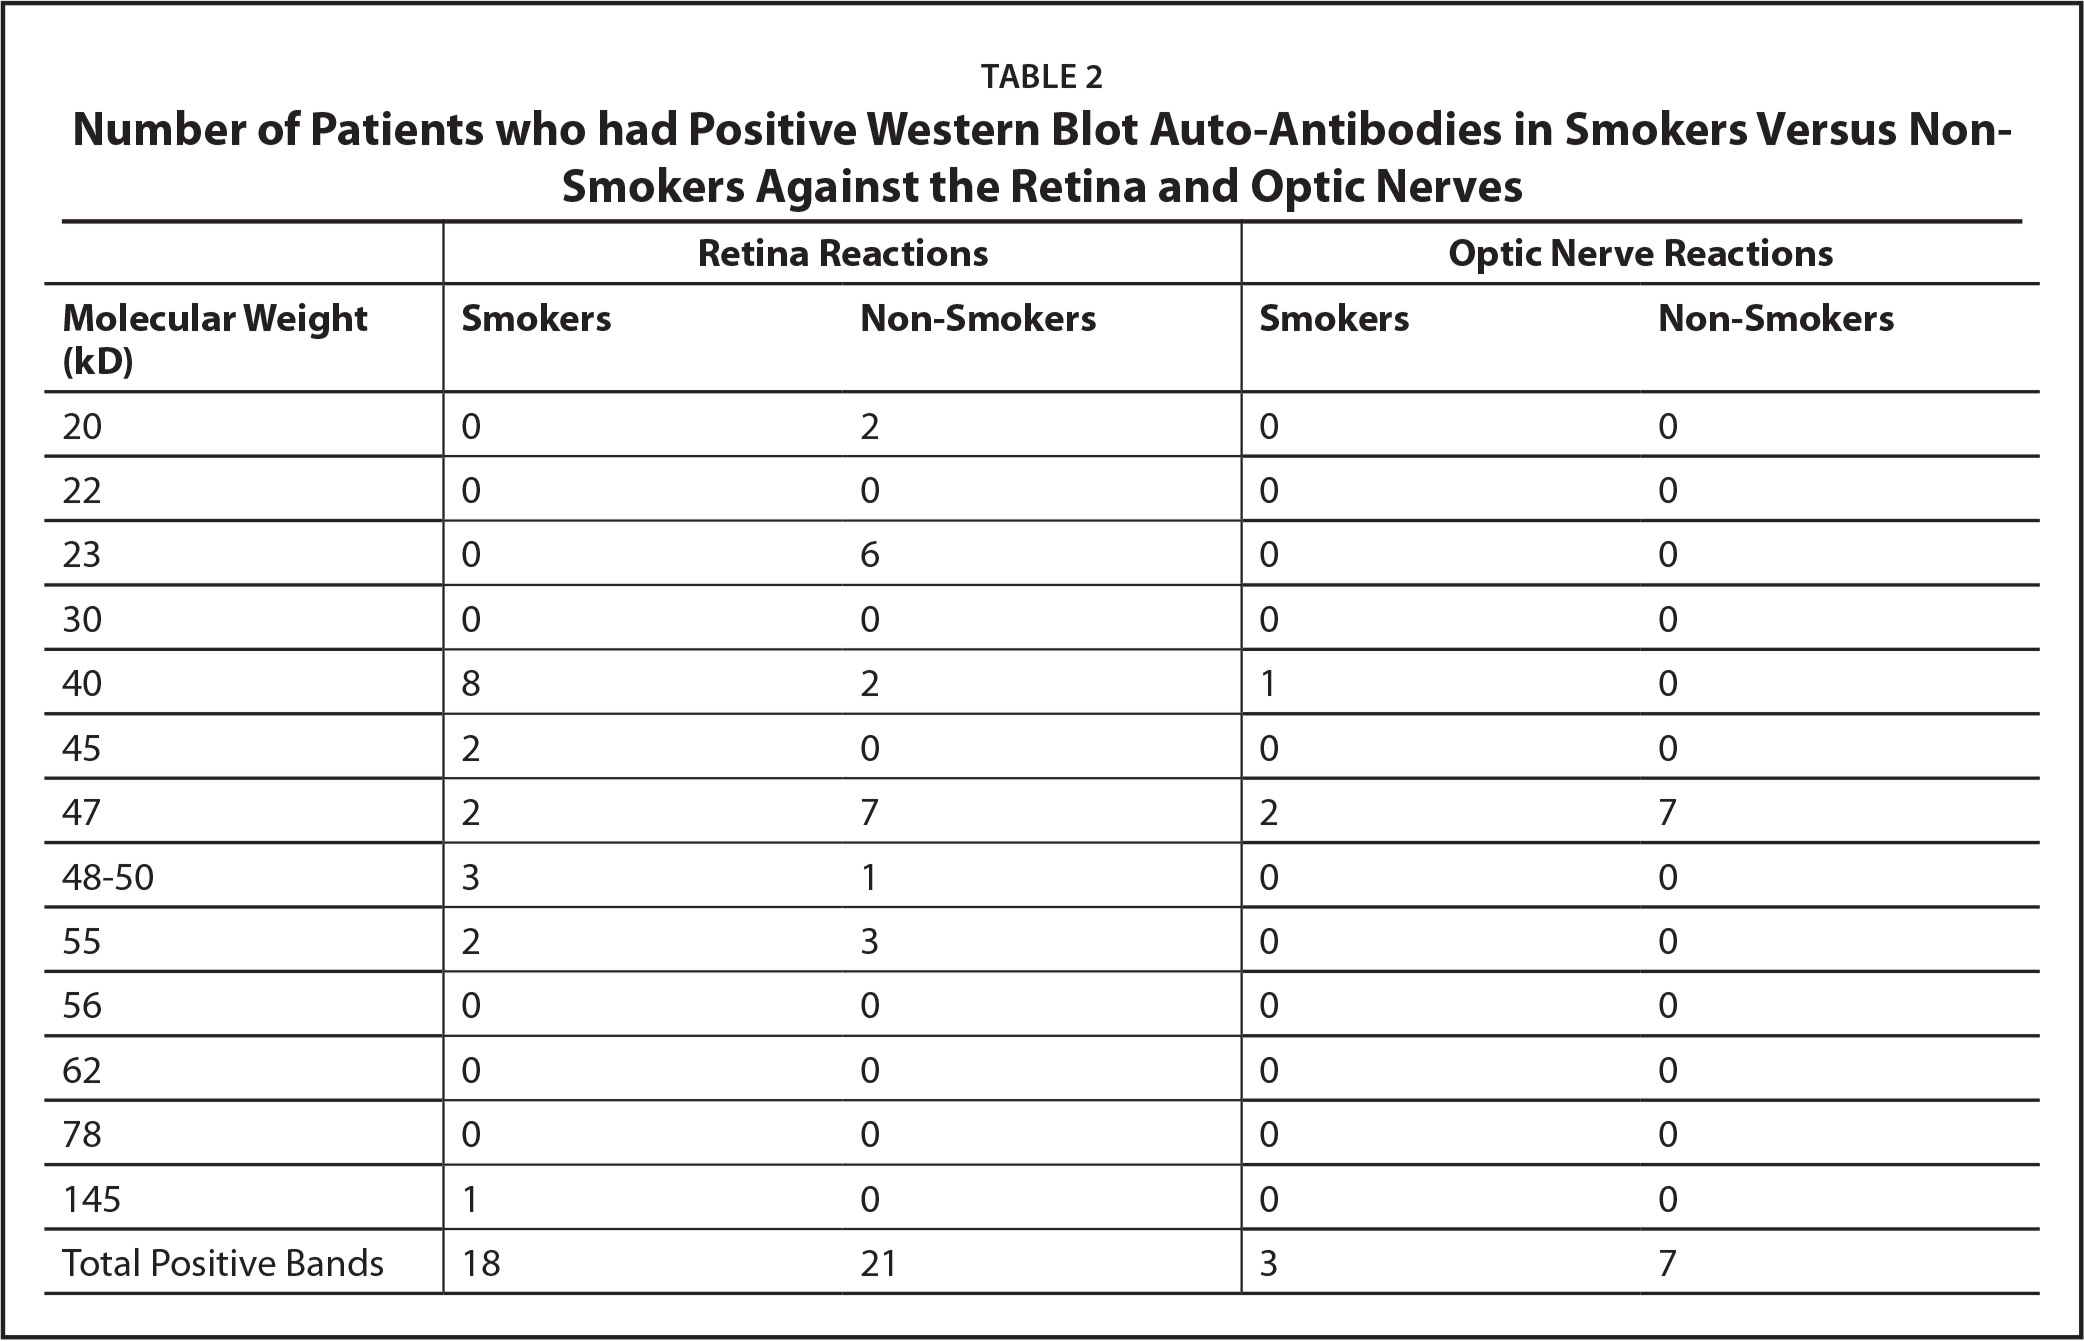 Number of Patients who had Positive Western Blot Auto-Antibodies in Smokers Versus Non-Smokers Against the Retina and Optic Nerves